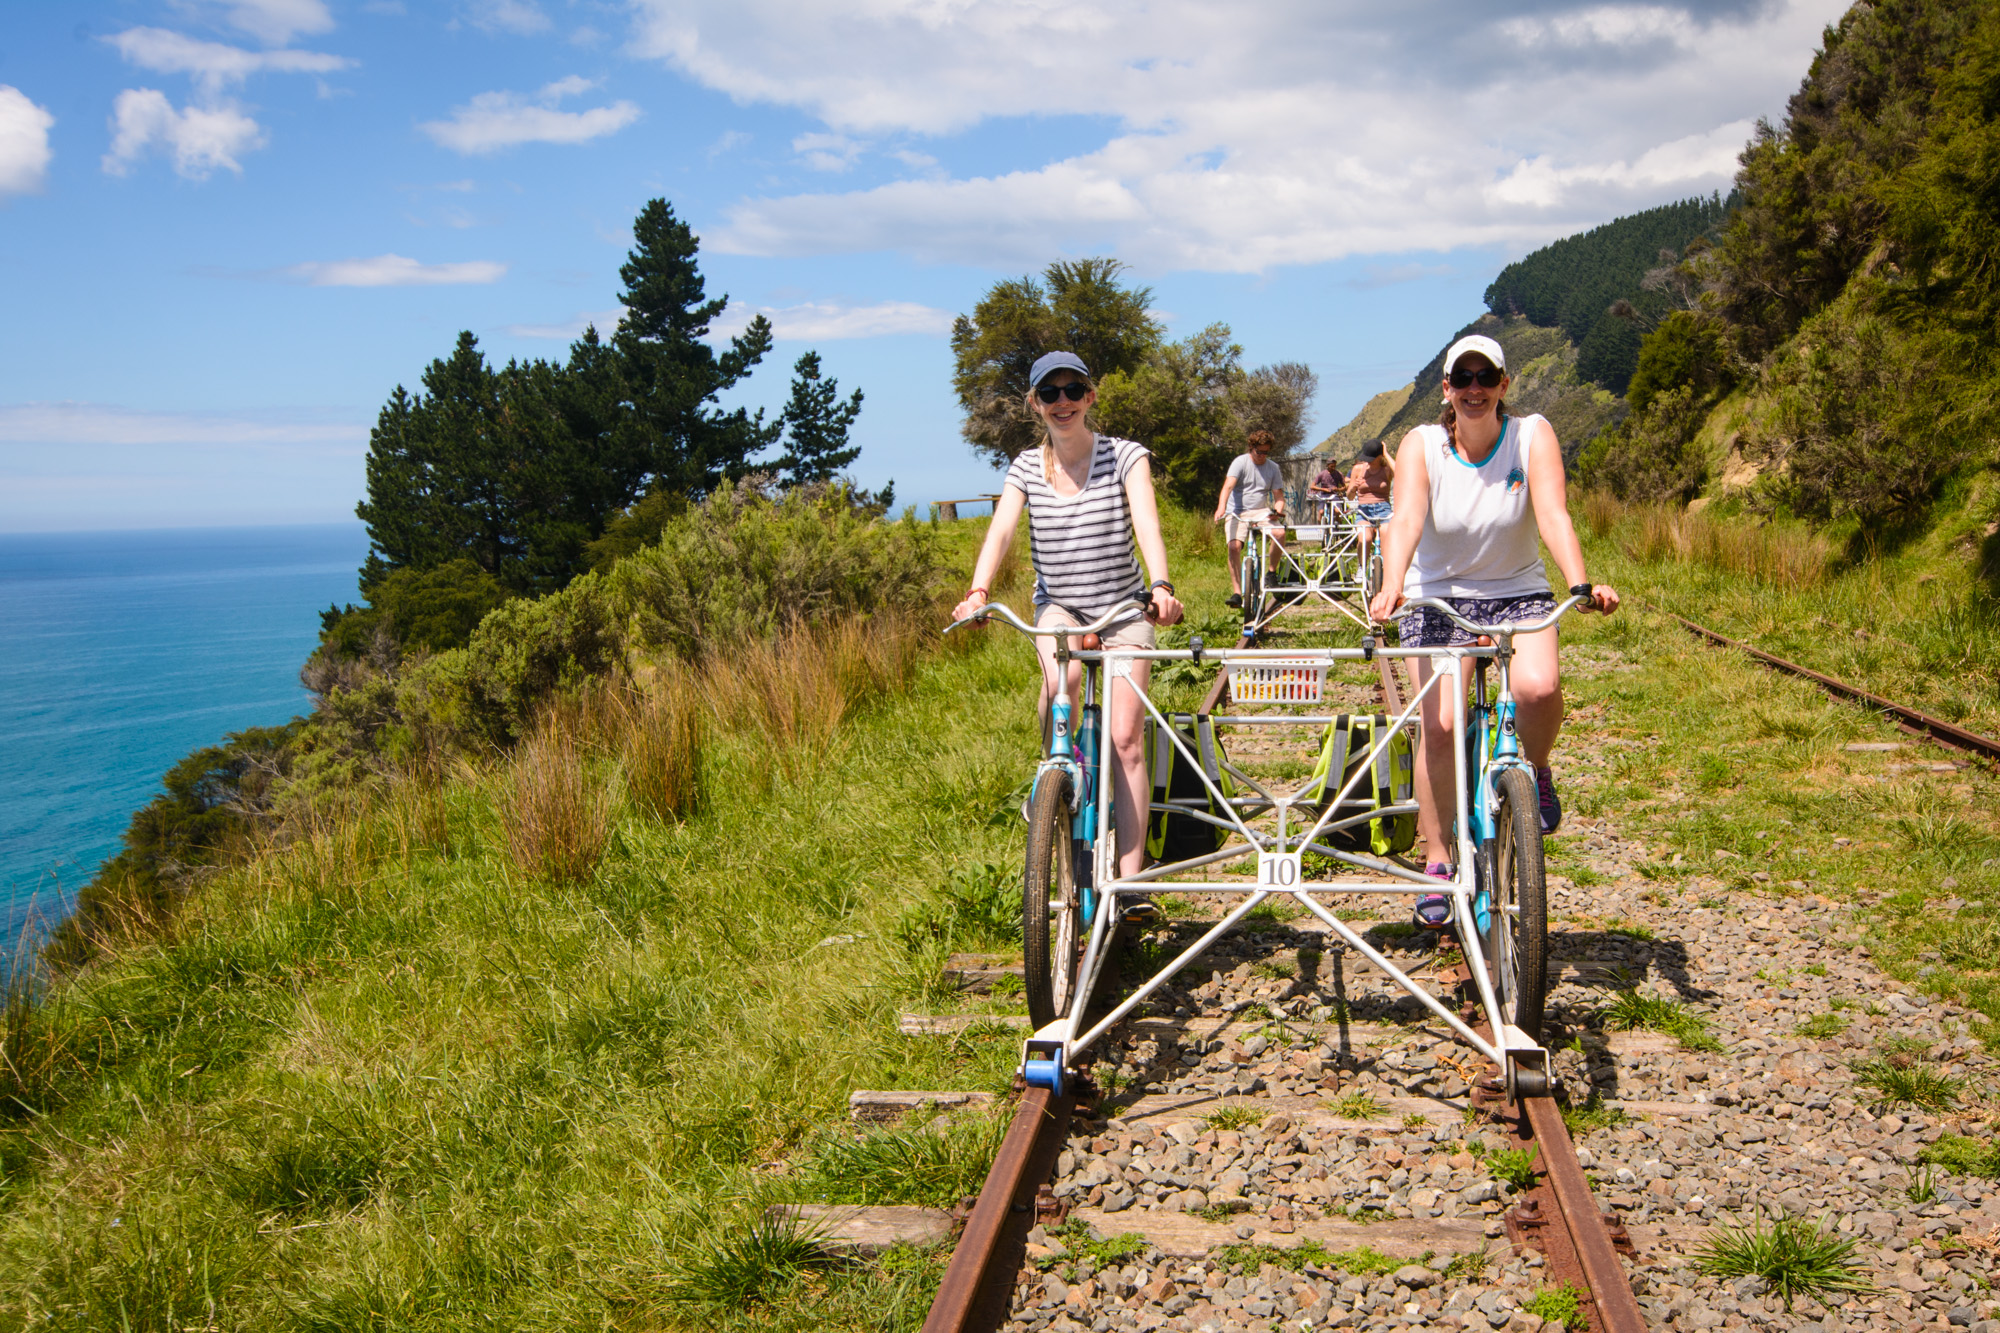 A Railbike Adventure